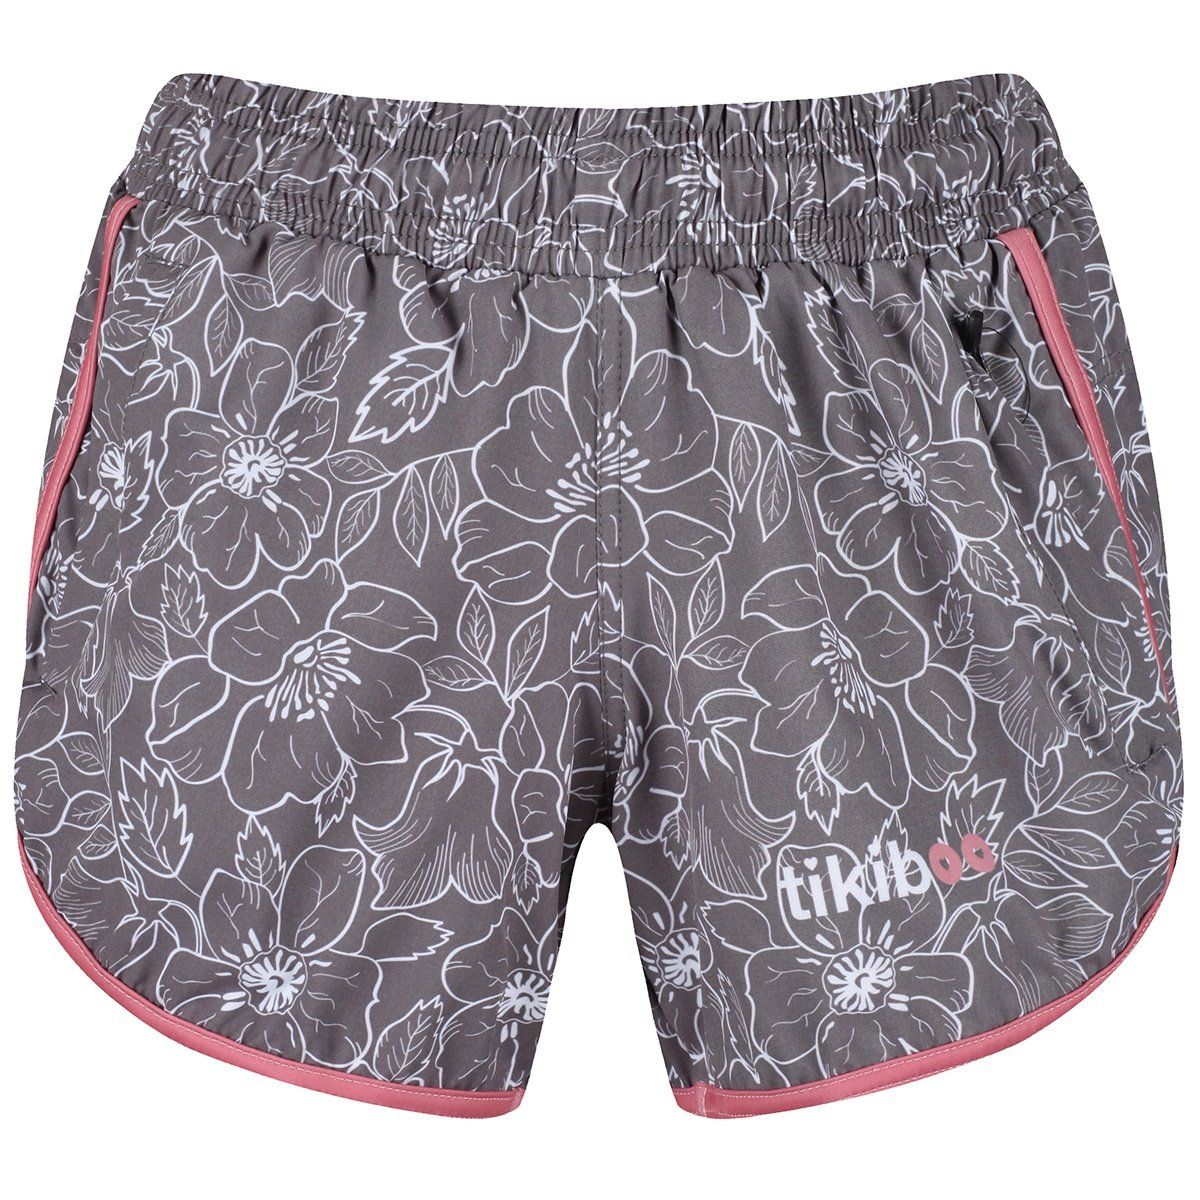 Delicate Bloom Loose Fit Workout Shorts Delicate Bloom Loose Fit Workout Shorts Under Wear underwear chafing